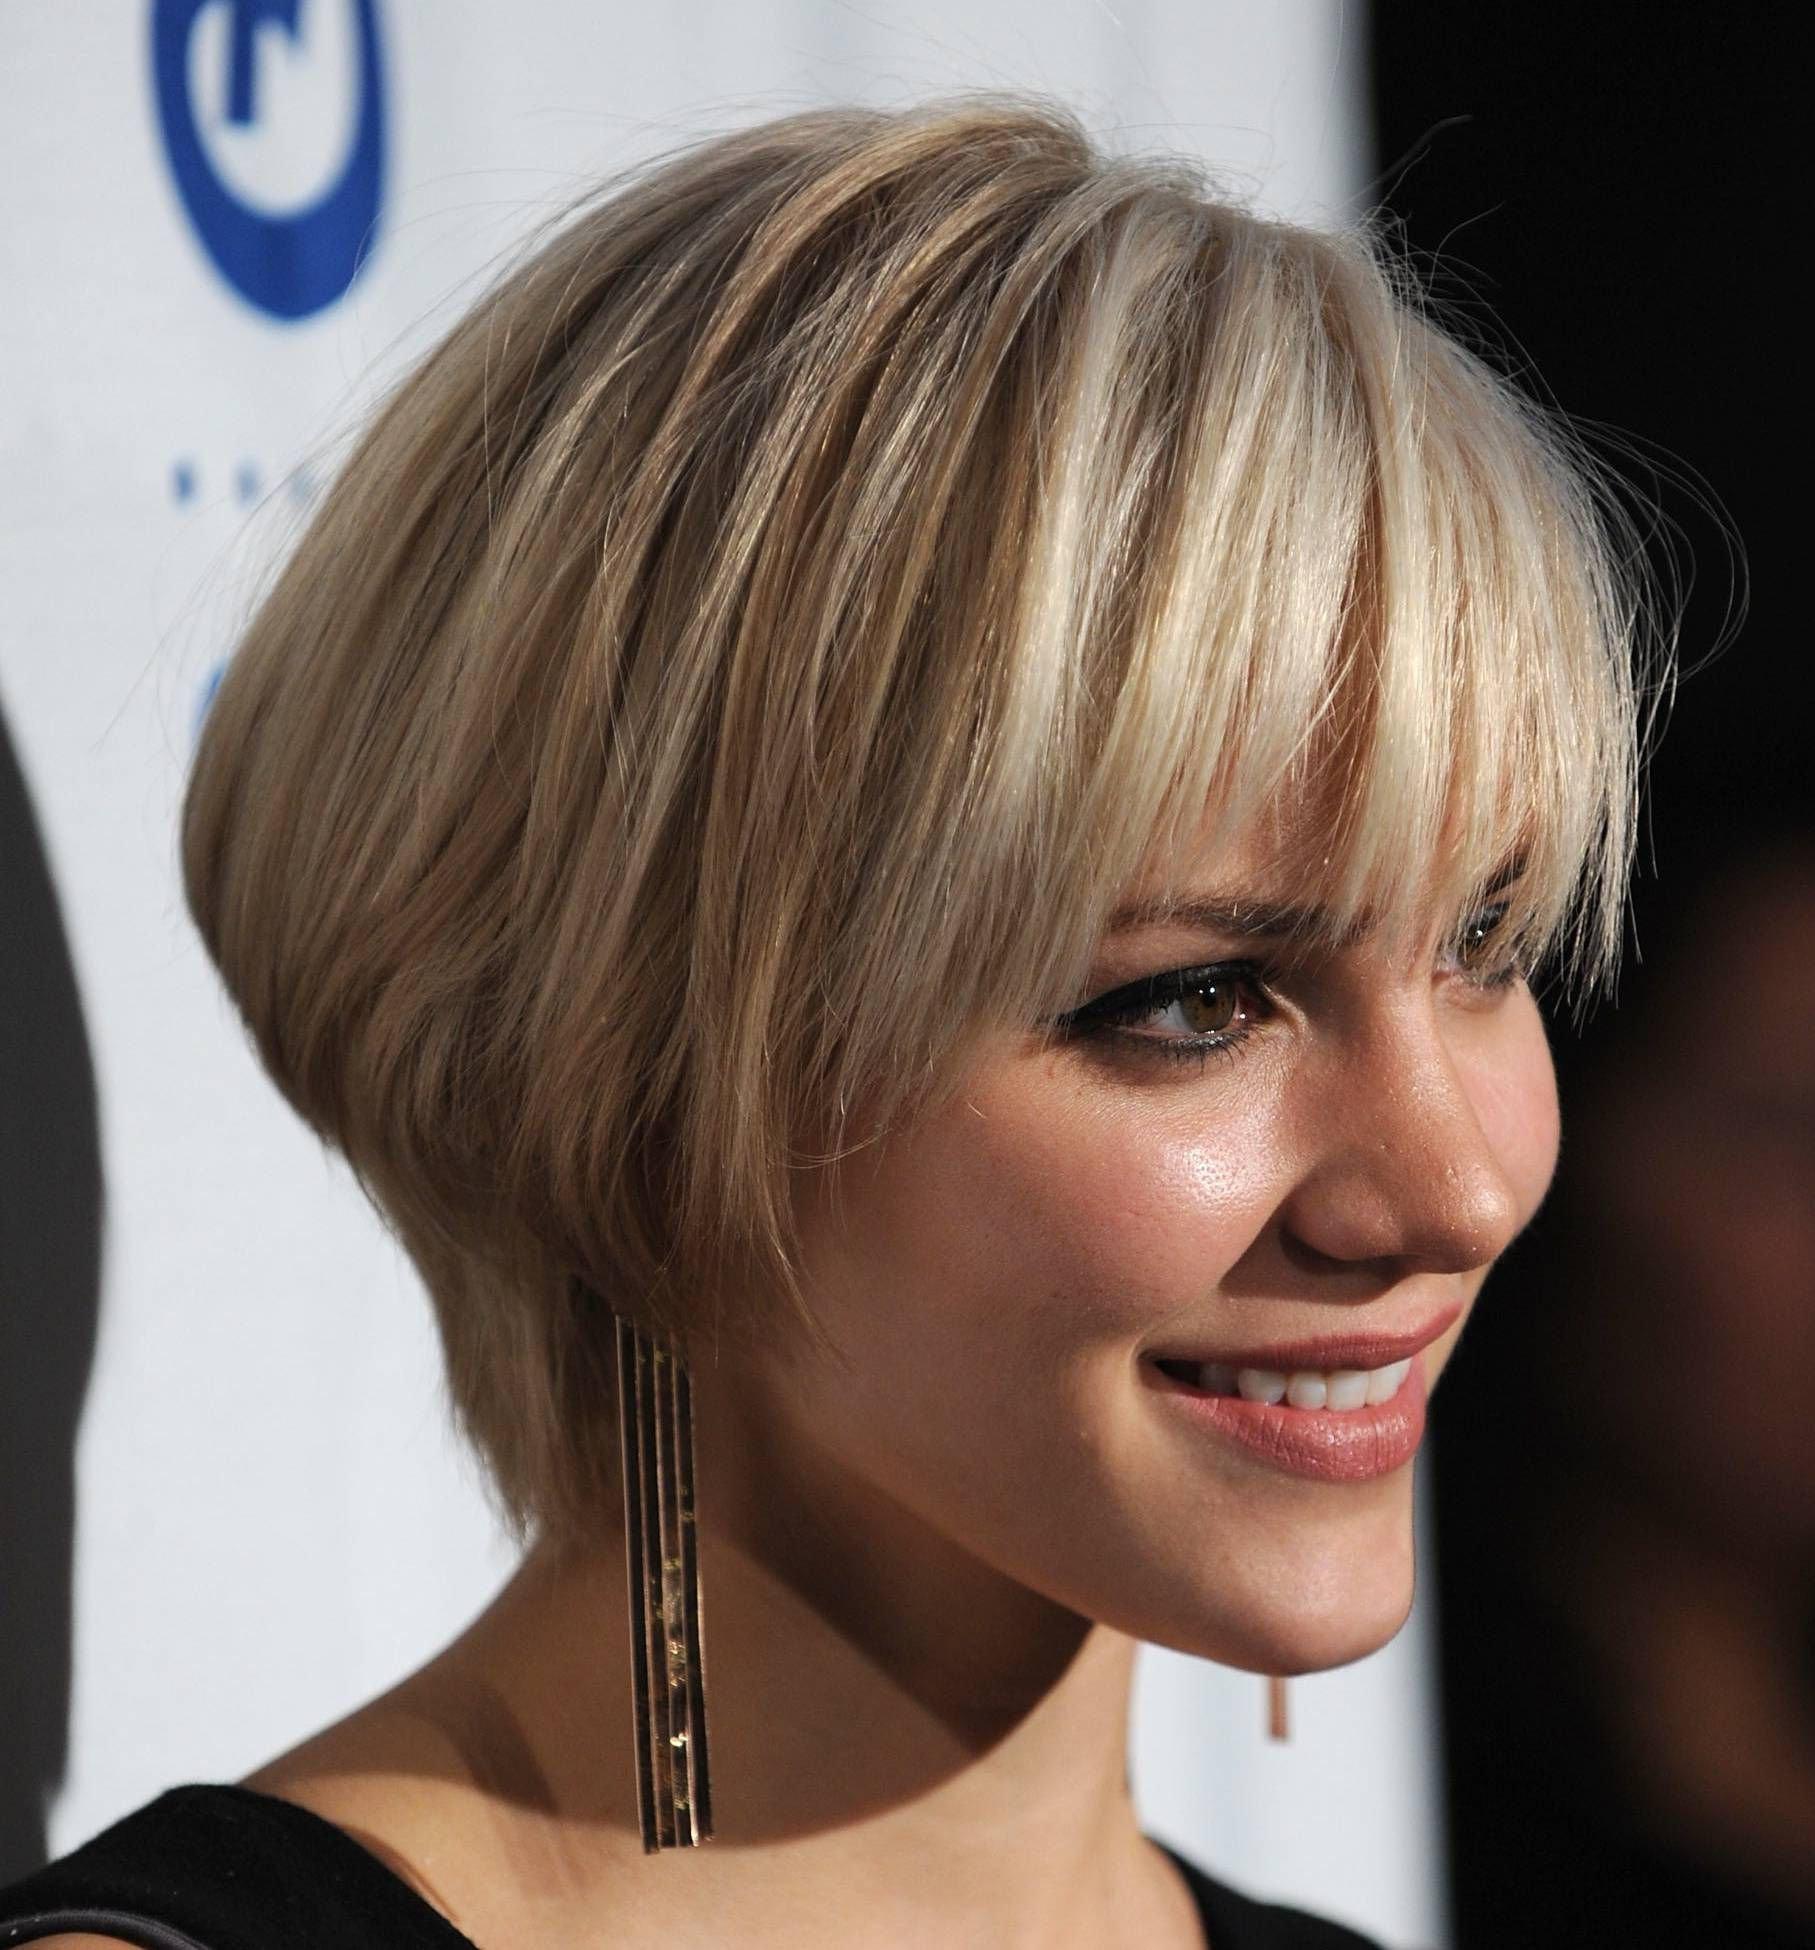 Astounding 1000 Images About Short Hairstyles On Pinterest Angled Bob Short Hairstyles For Black Women Fulllsitofus